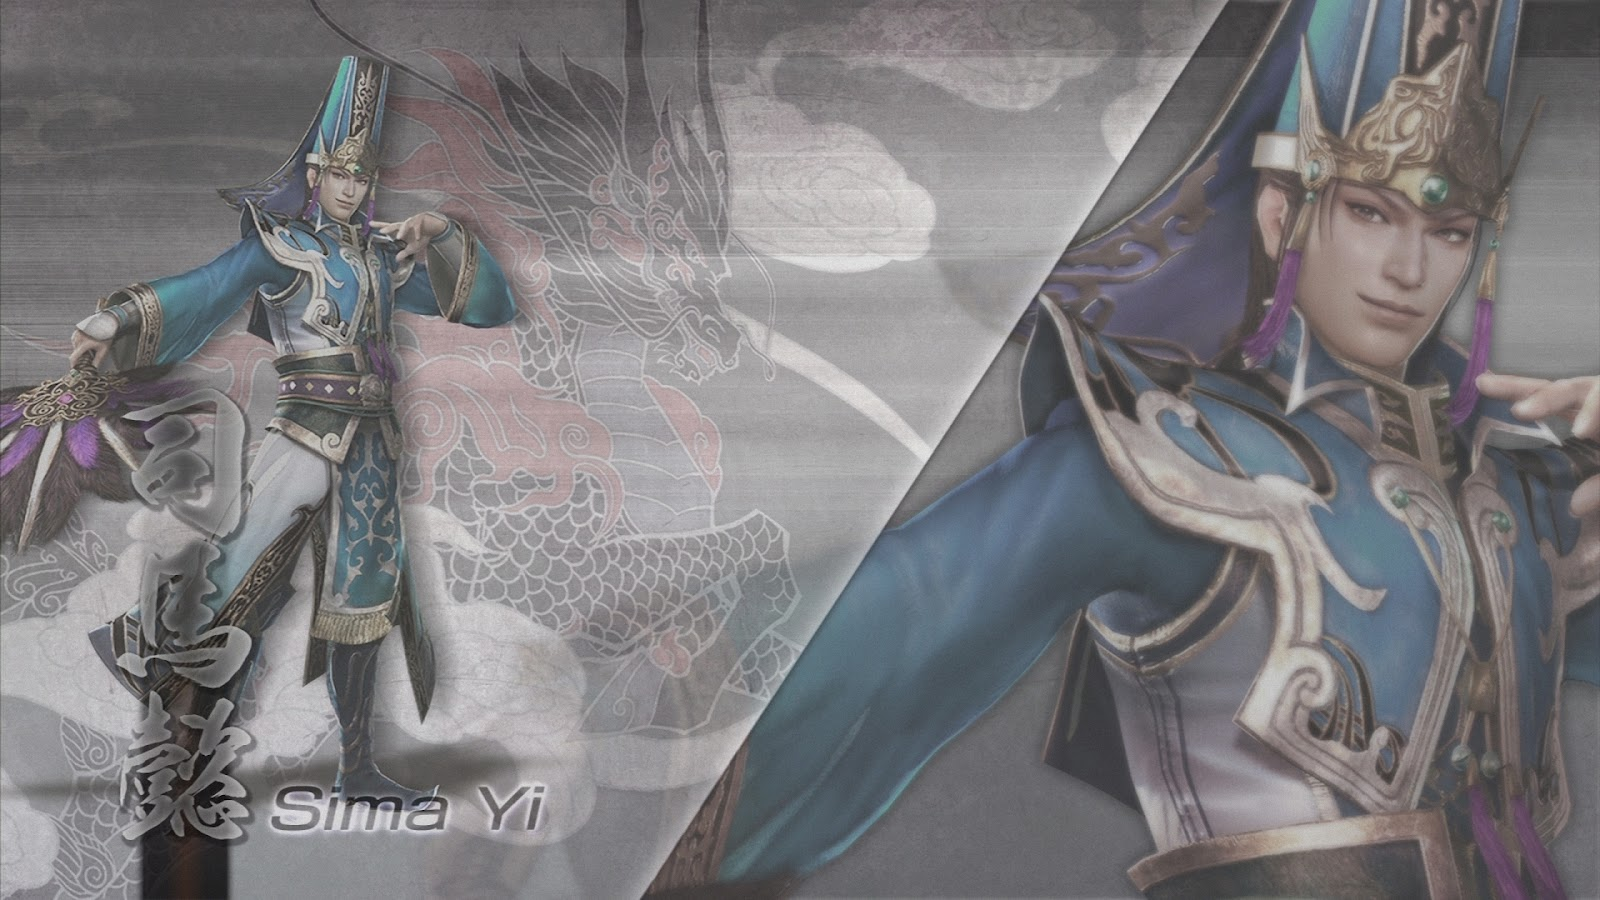 http://1.bp.blogspot.com/-R2wy3aSnRSc/UBVUx2TZRpI/AAAAAAAAFB8/ljqPQ_BWxns/s1600/dynasty+warriors+7+wallpapers+3.jpg